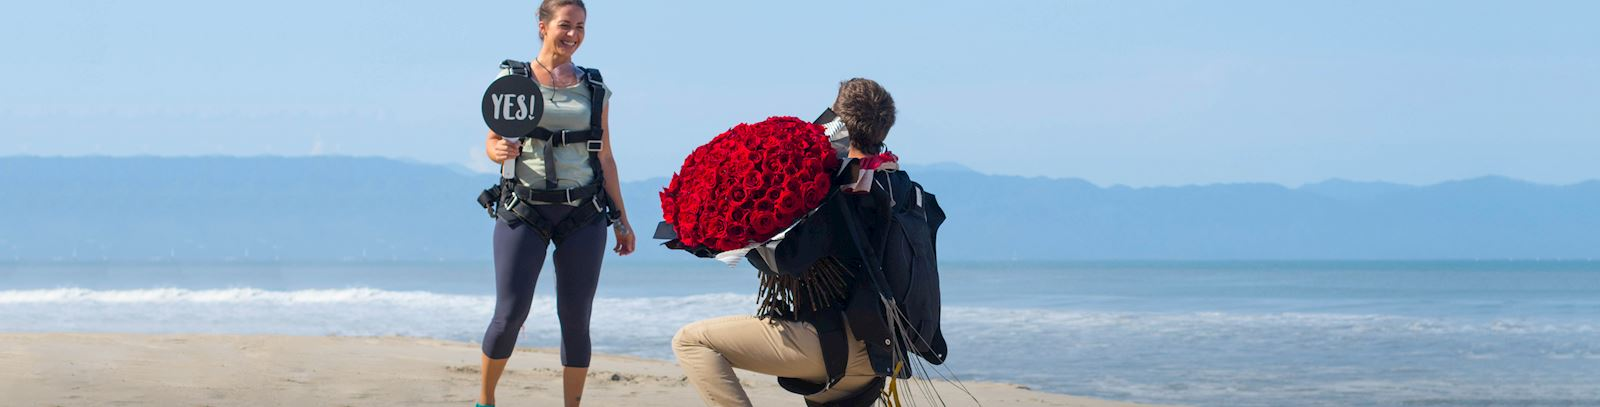 Over The Top Engagement - Grand Velas Riviera Nayarit